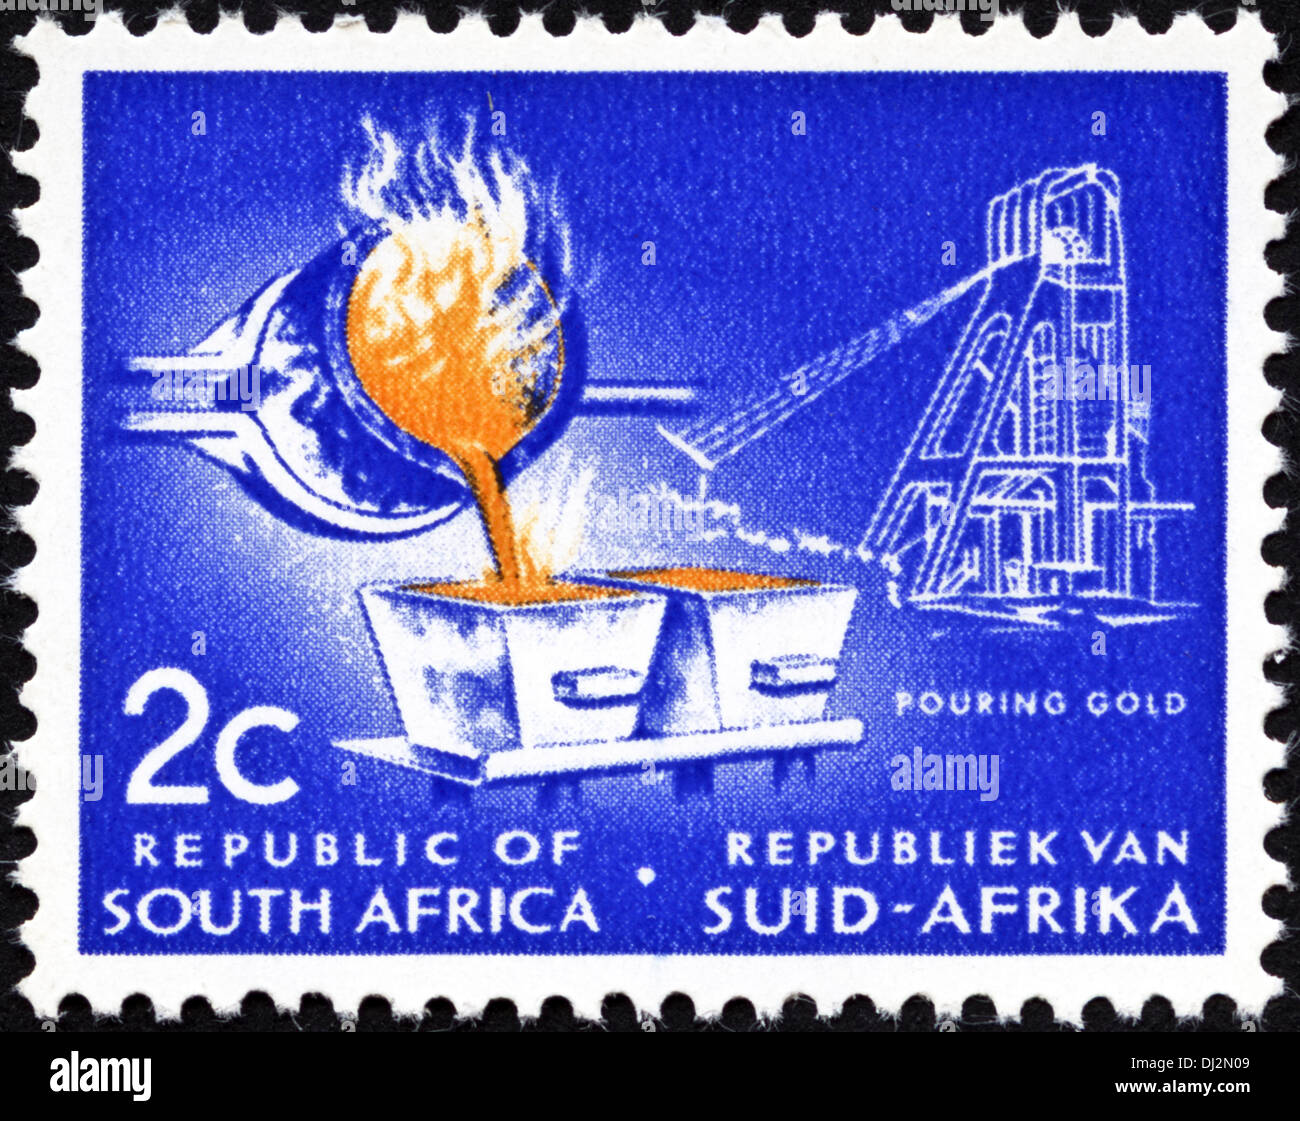 postage stamp Republic of South Africa RSA 2c featuring pouring gold mining dated 1969 - Stock Image